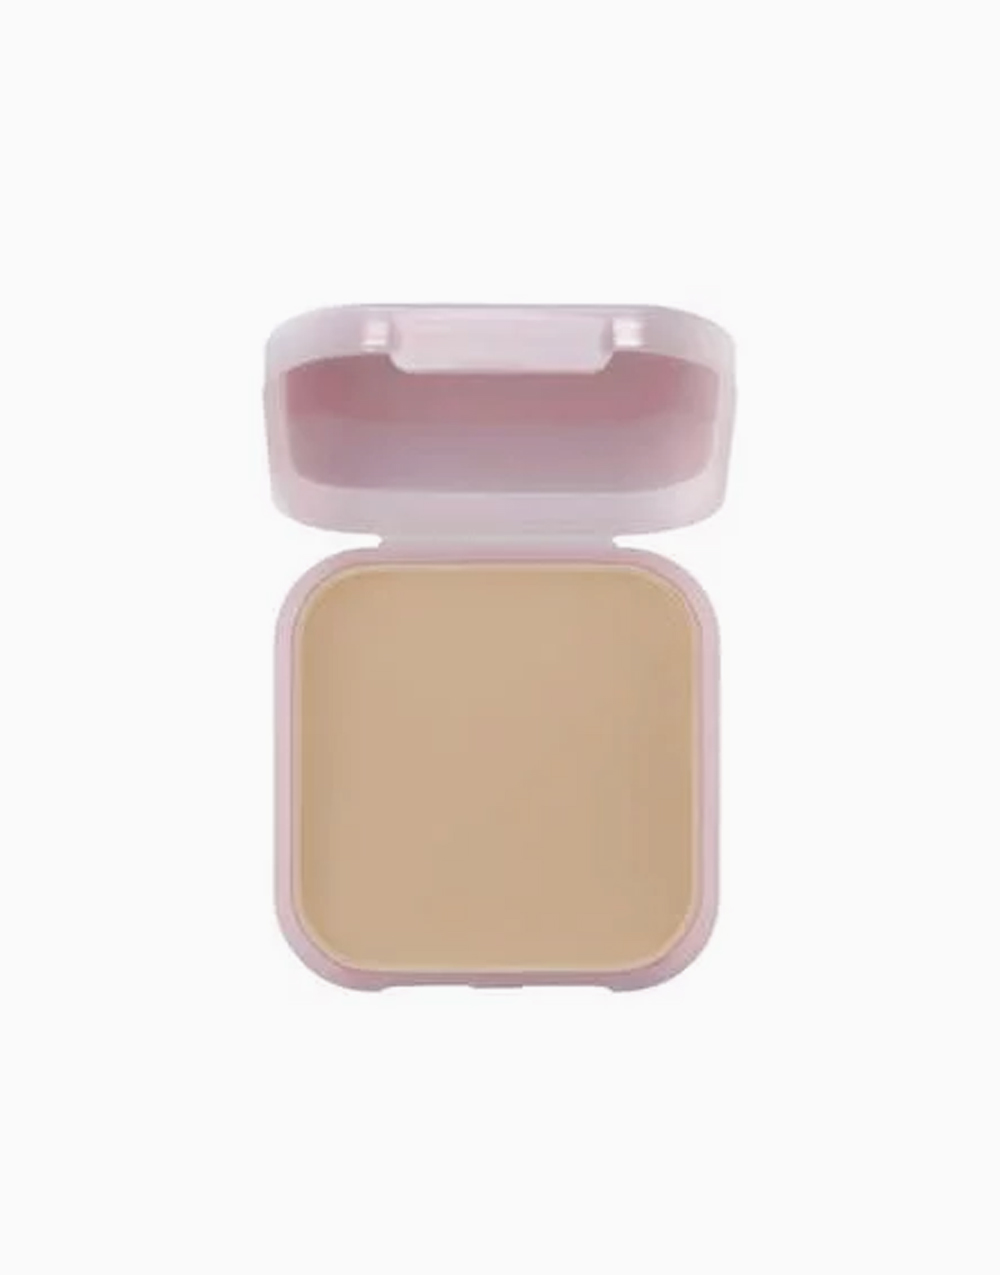 Clear Smooth All in One Refill by Maybelline | 05 Sand Beige